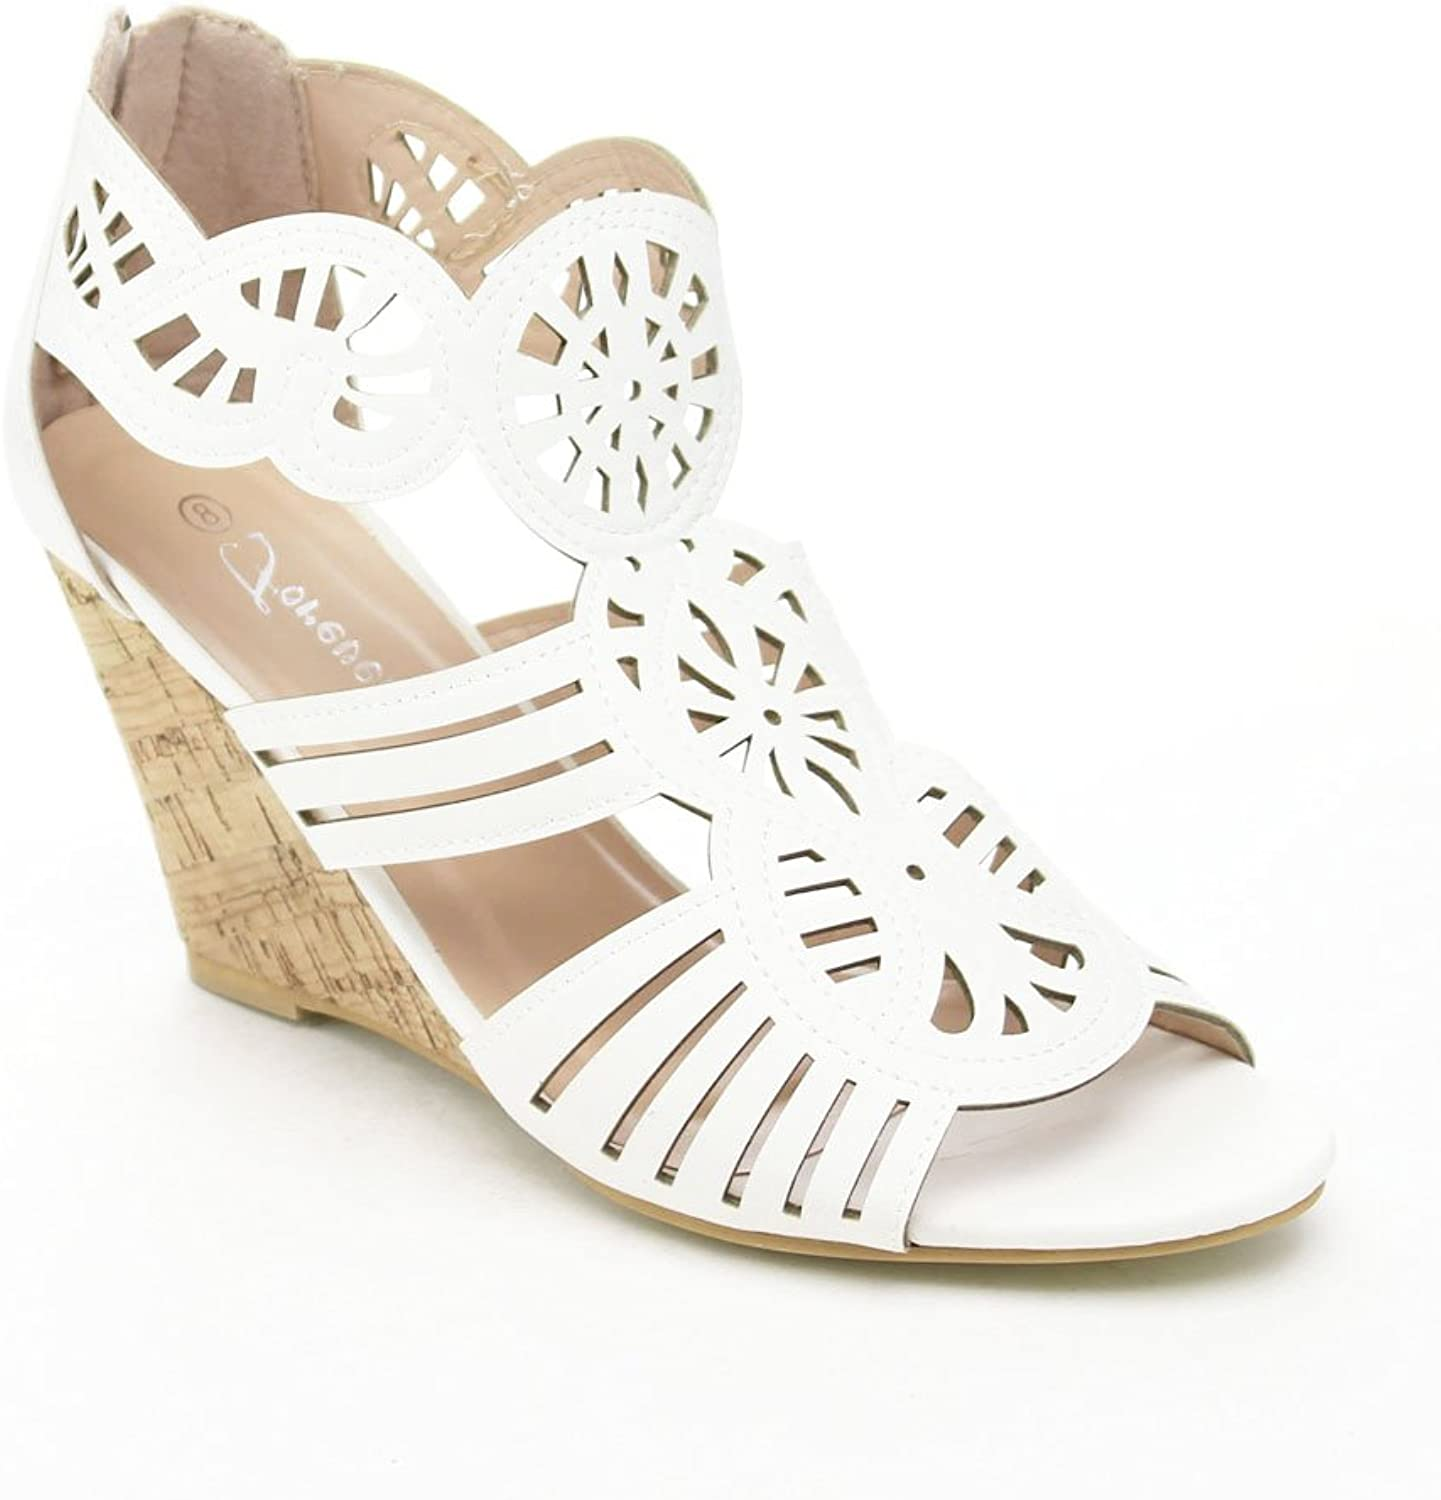 Forever Ethan-03 Women's Wedge Heel Ankle Strap Sandals,White,10